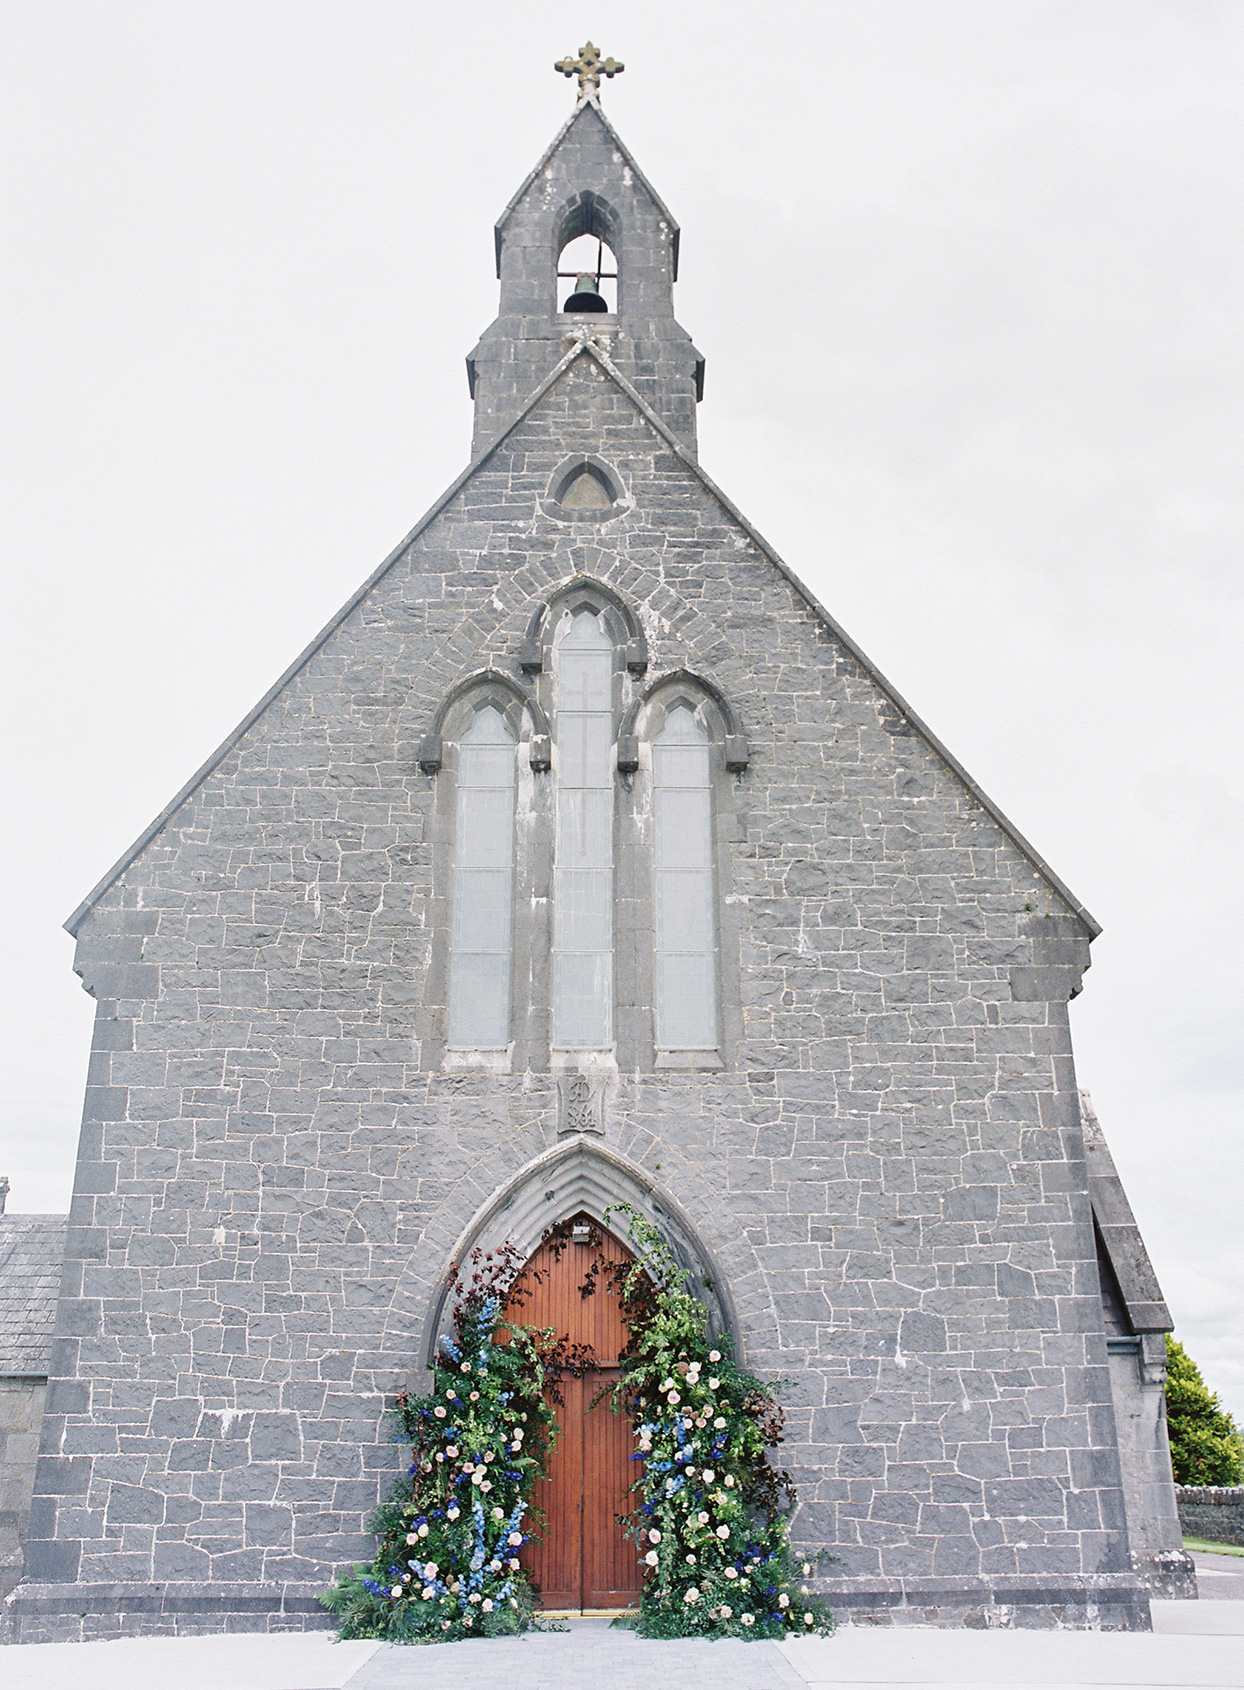 grey stone church building with floral and greenery display on front door